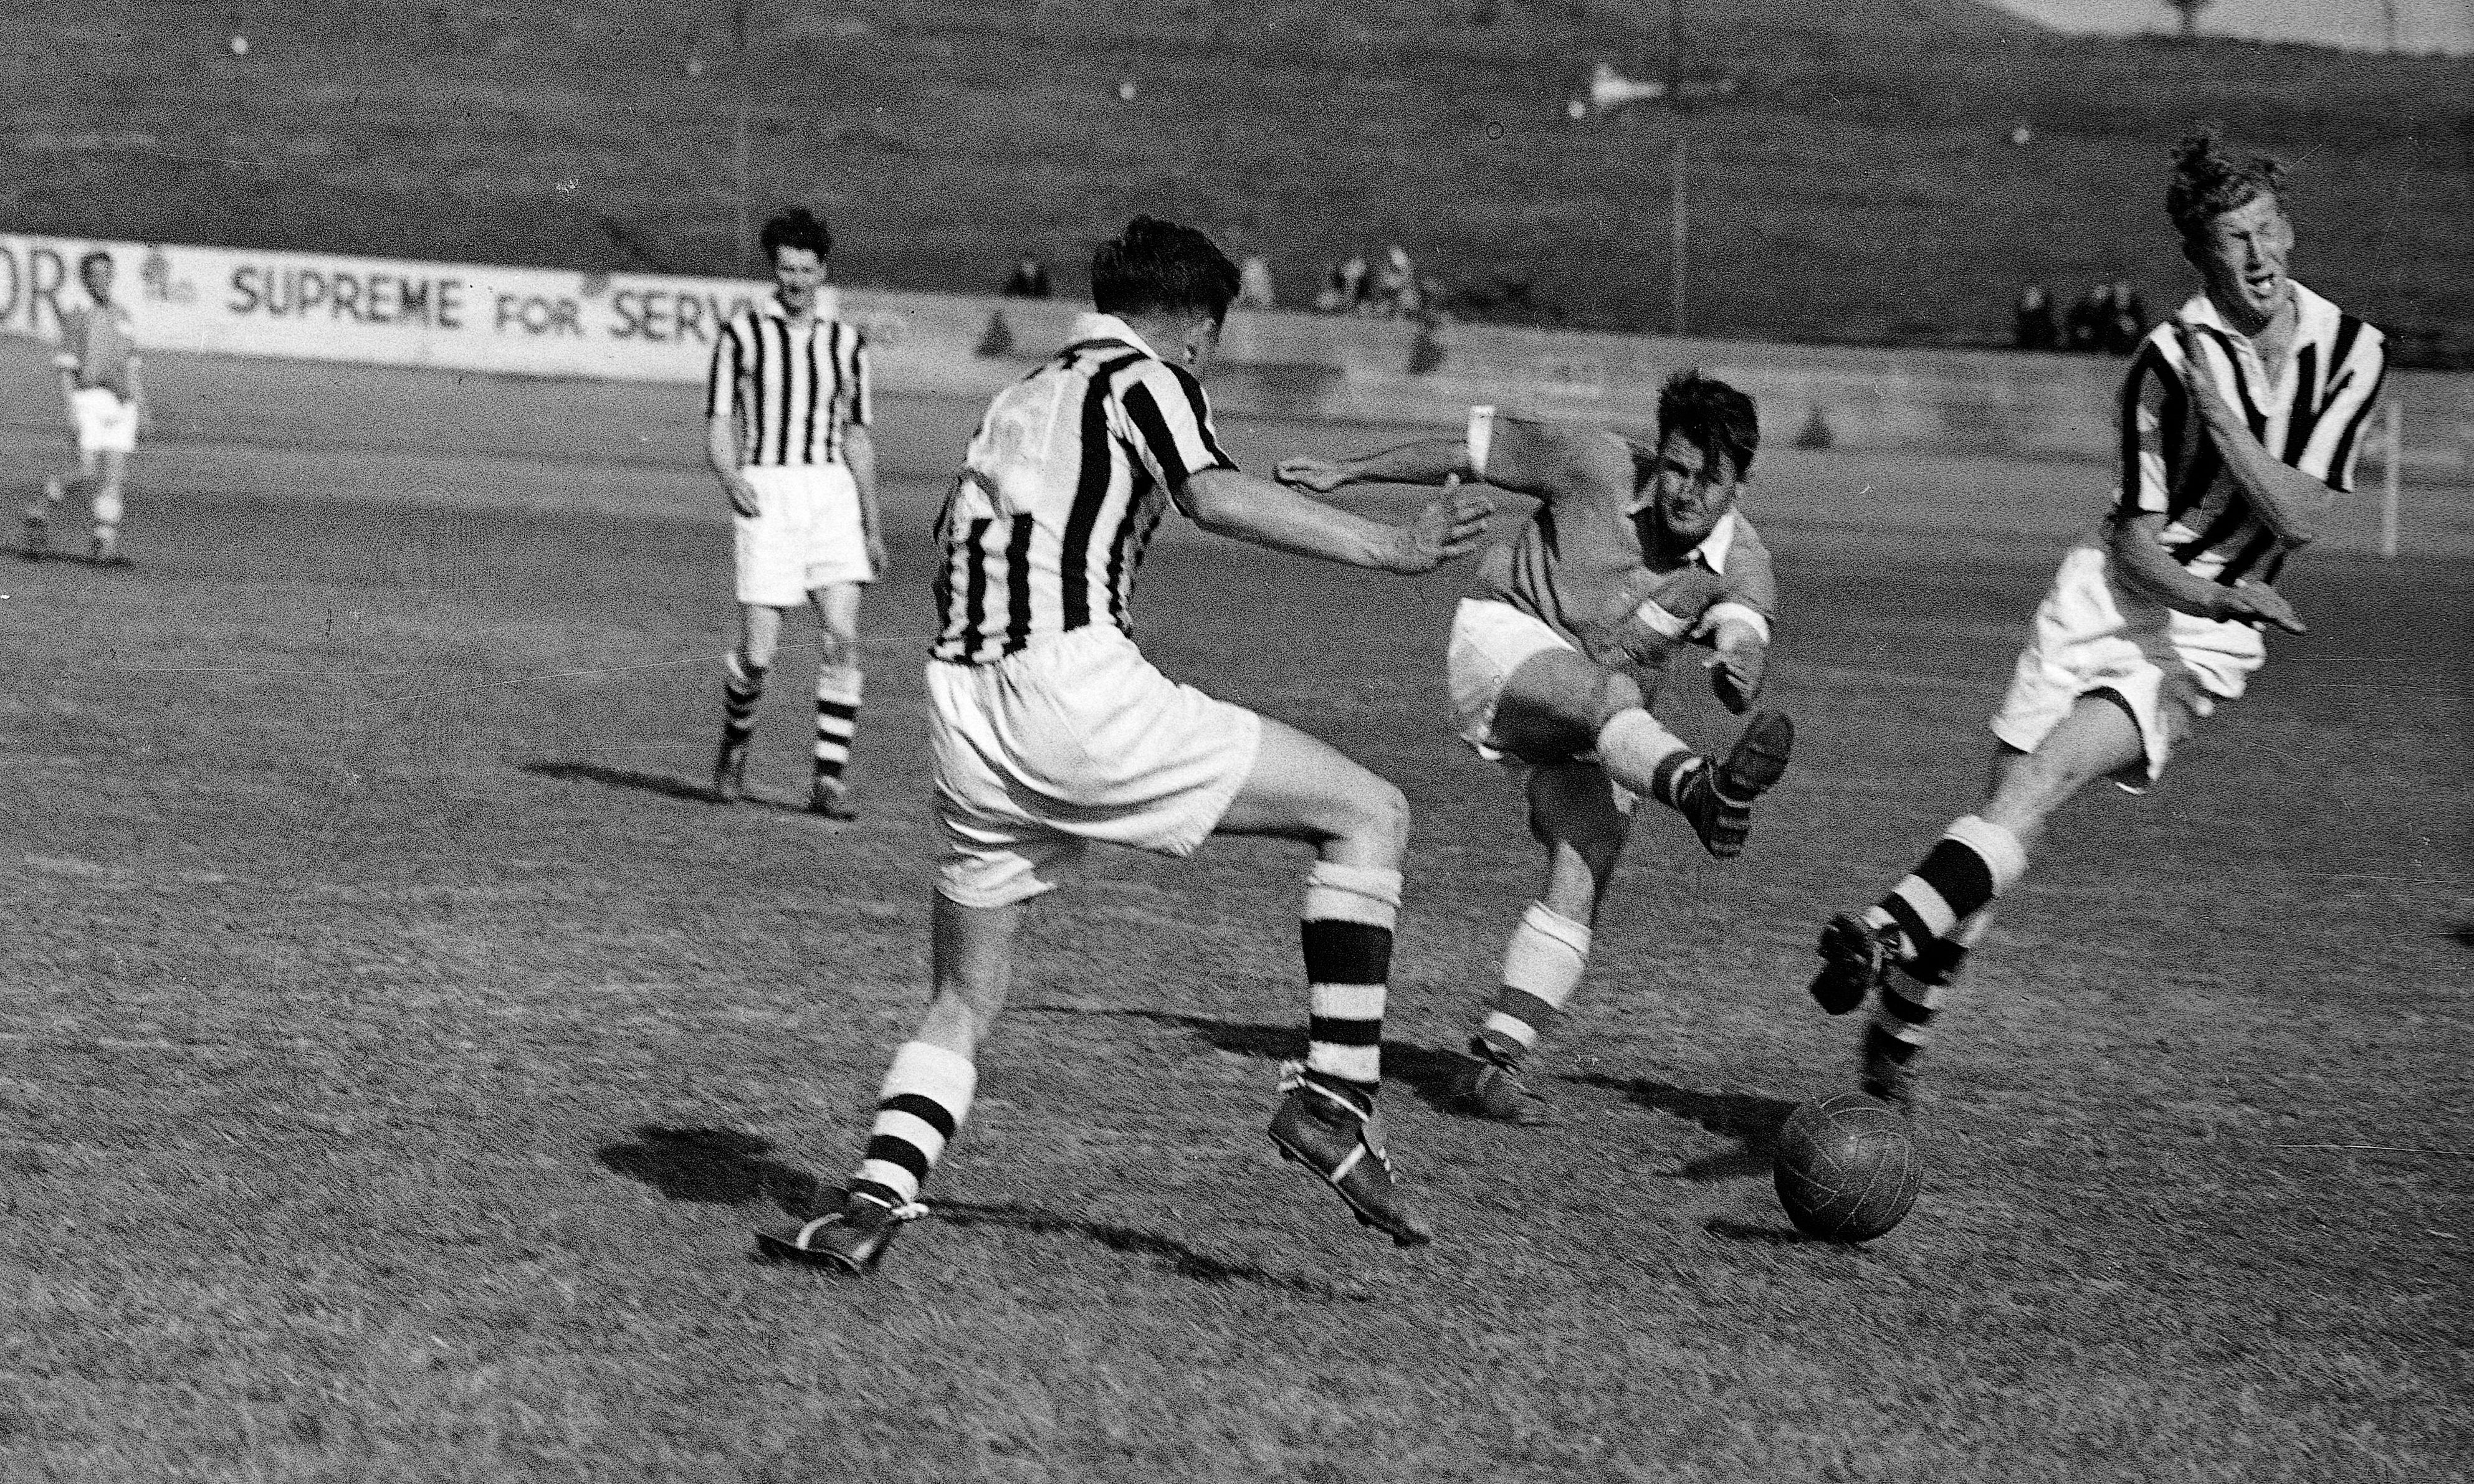 Australia's rich football history to be honoured by new FFA heritage committee